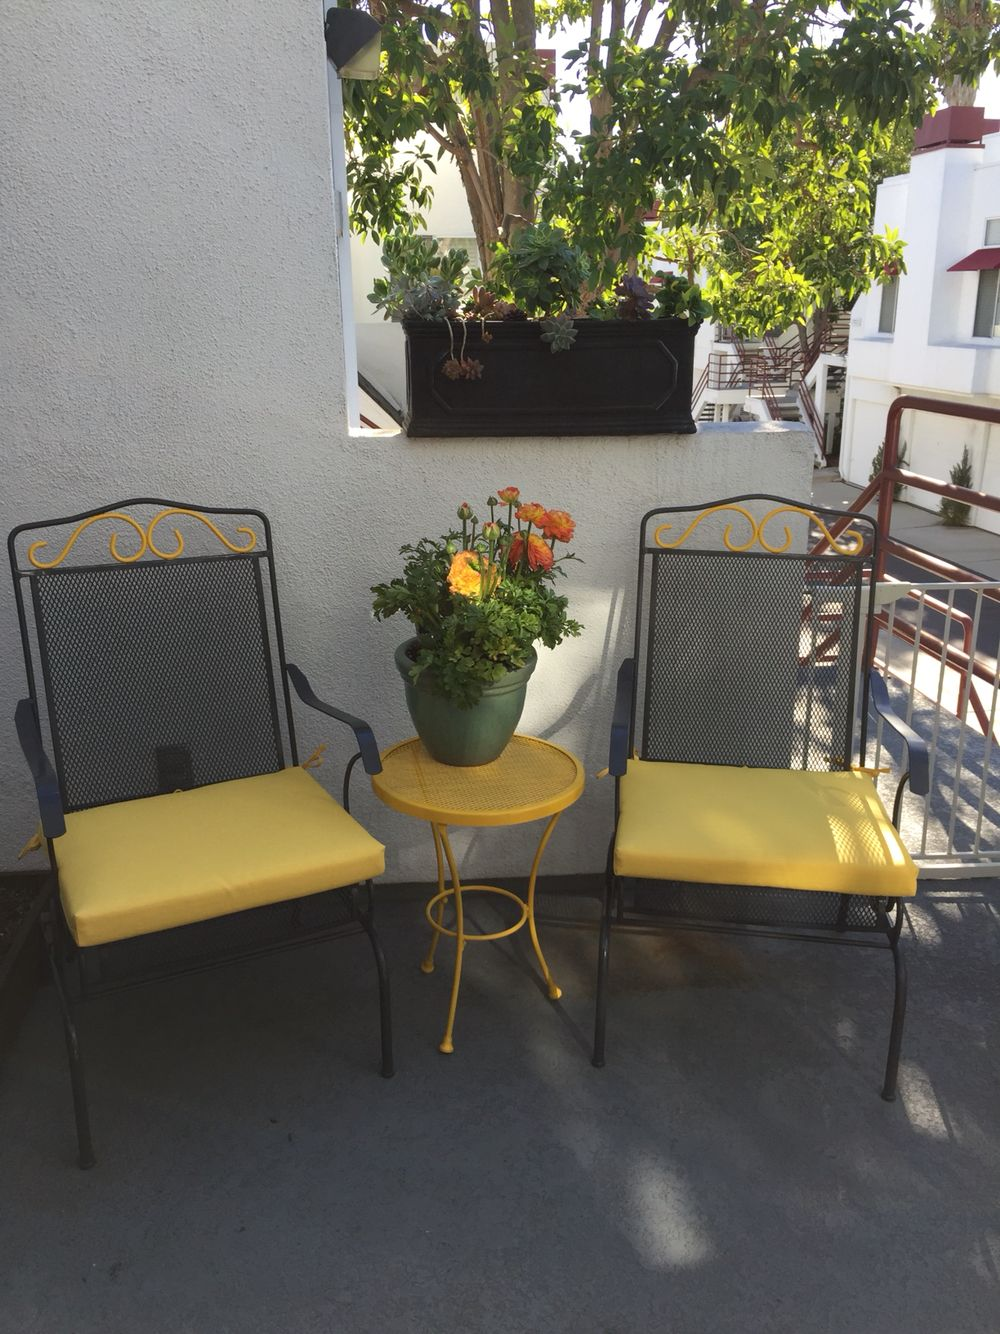 luxurypatio modern rattan tommy bahama outdoor furniture. Yellow And Gray Up-cycled Patio Furniture! Diy For The Win! Luxurypatio Modern Rattan Tommy Bahama Outdoor Furniture T